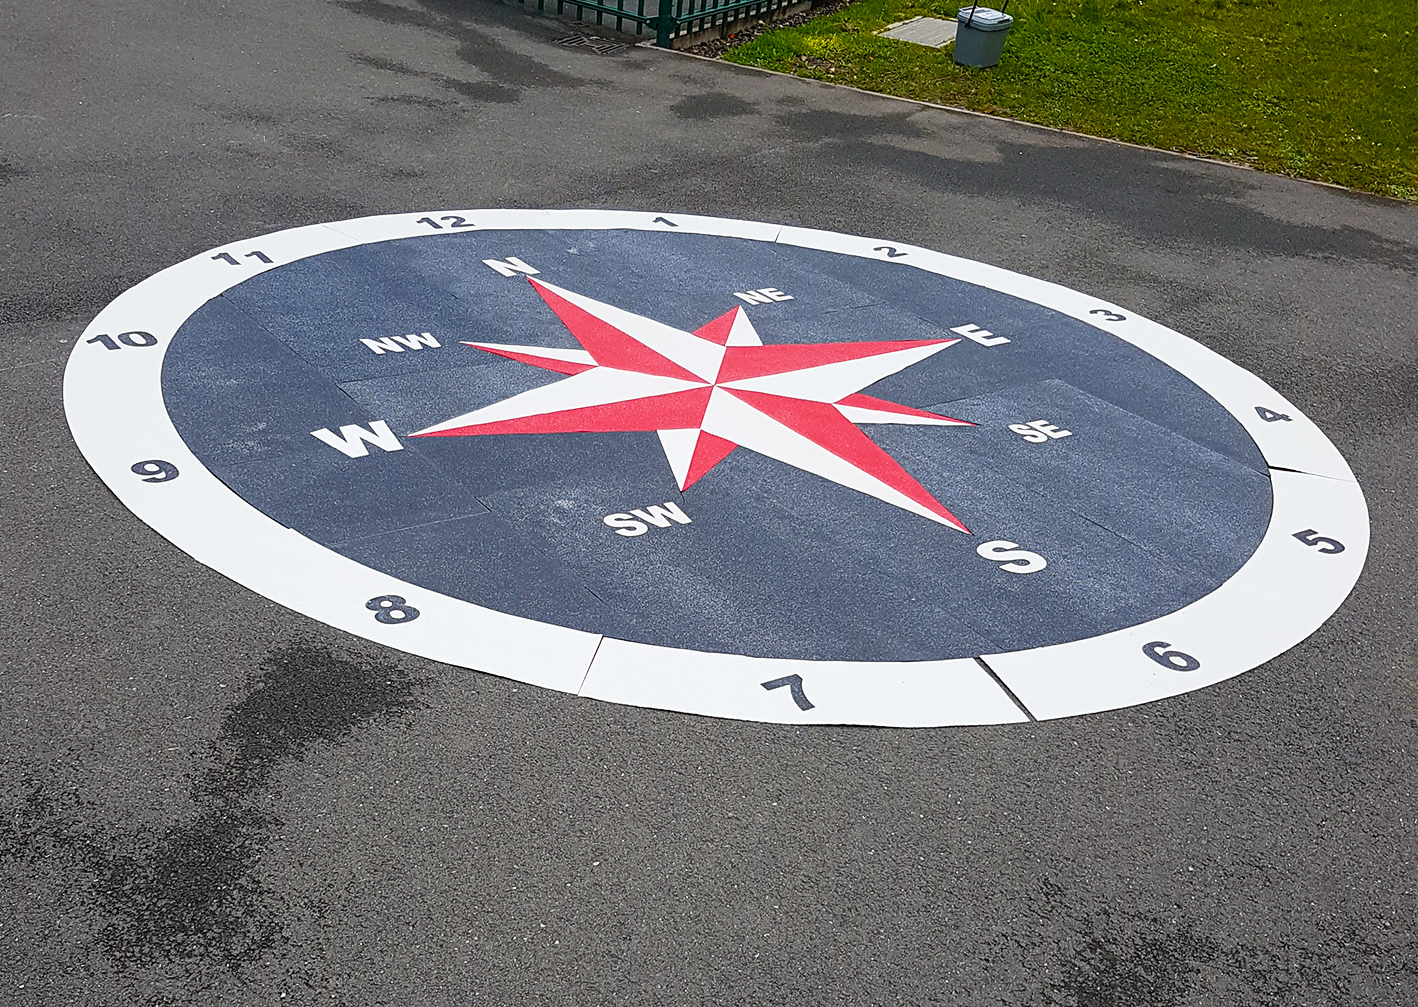 Preformed Thermoplastic Playground Compass